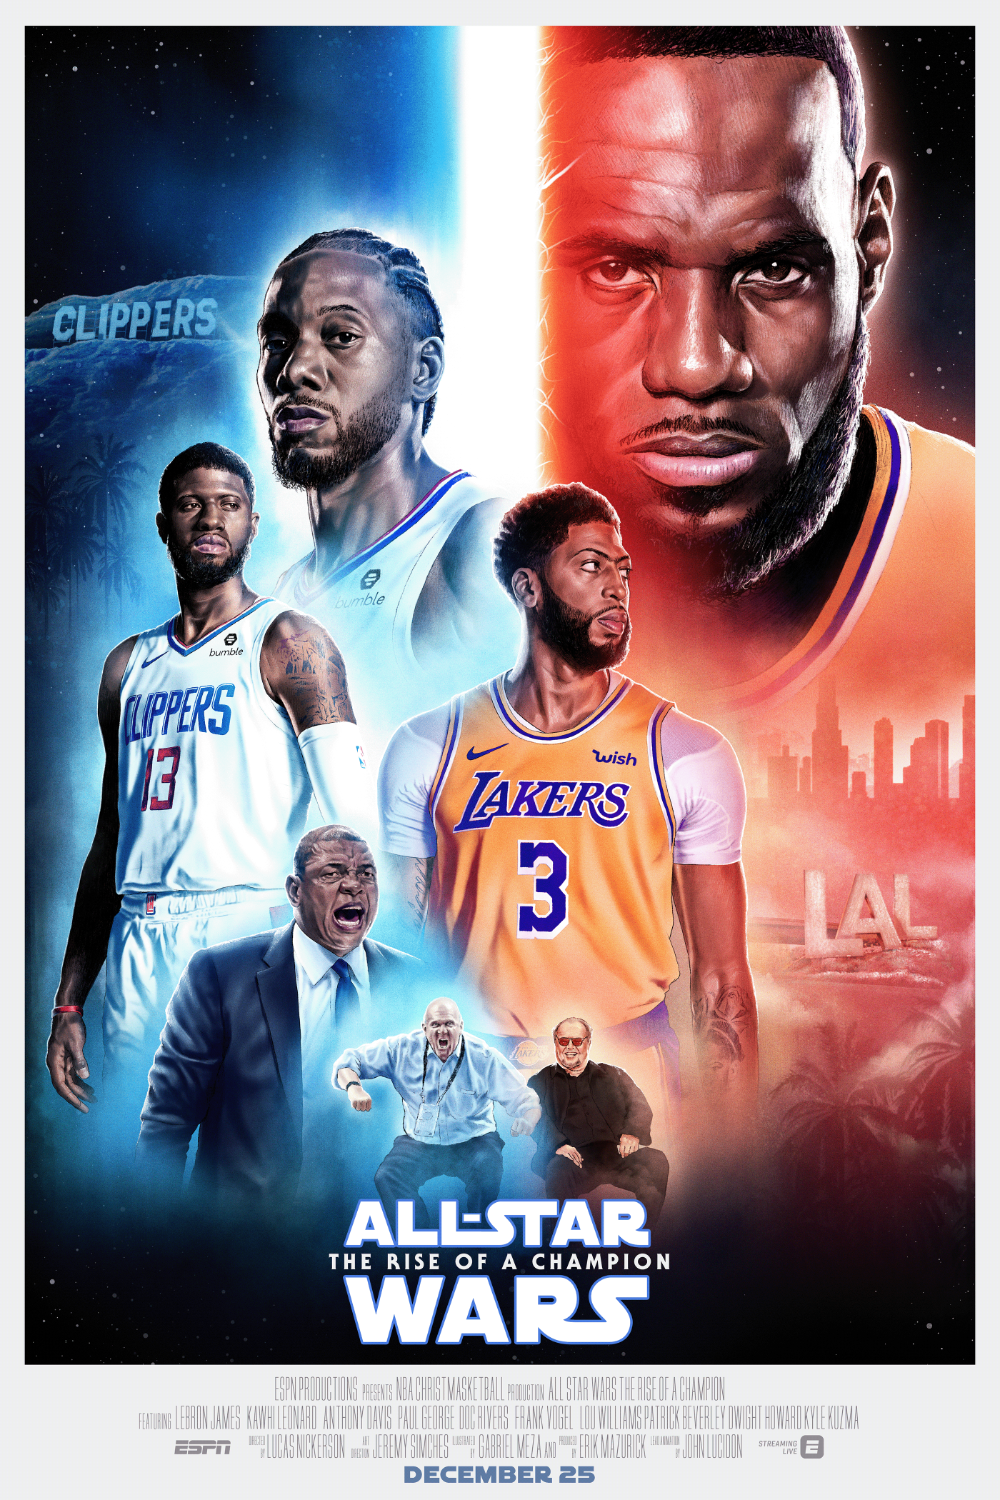 Espn Nba Lakers X Clippers Christmas Day Movie Poster On Behance In 2020 Nba Lakers Vs Lakers